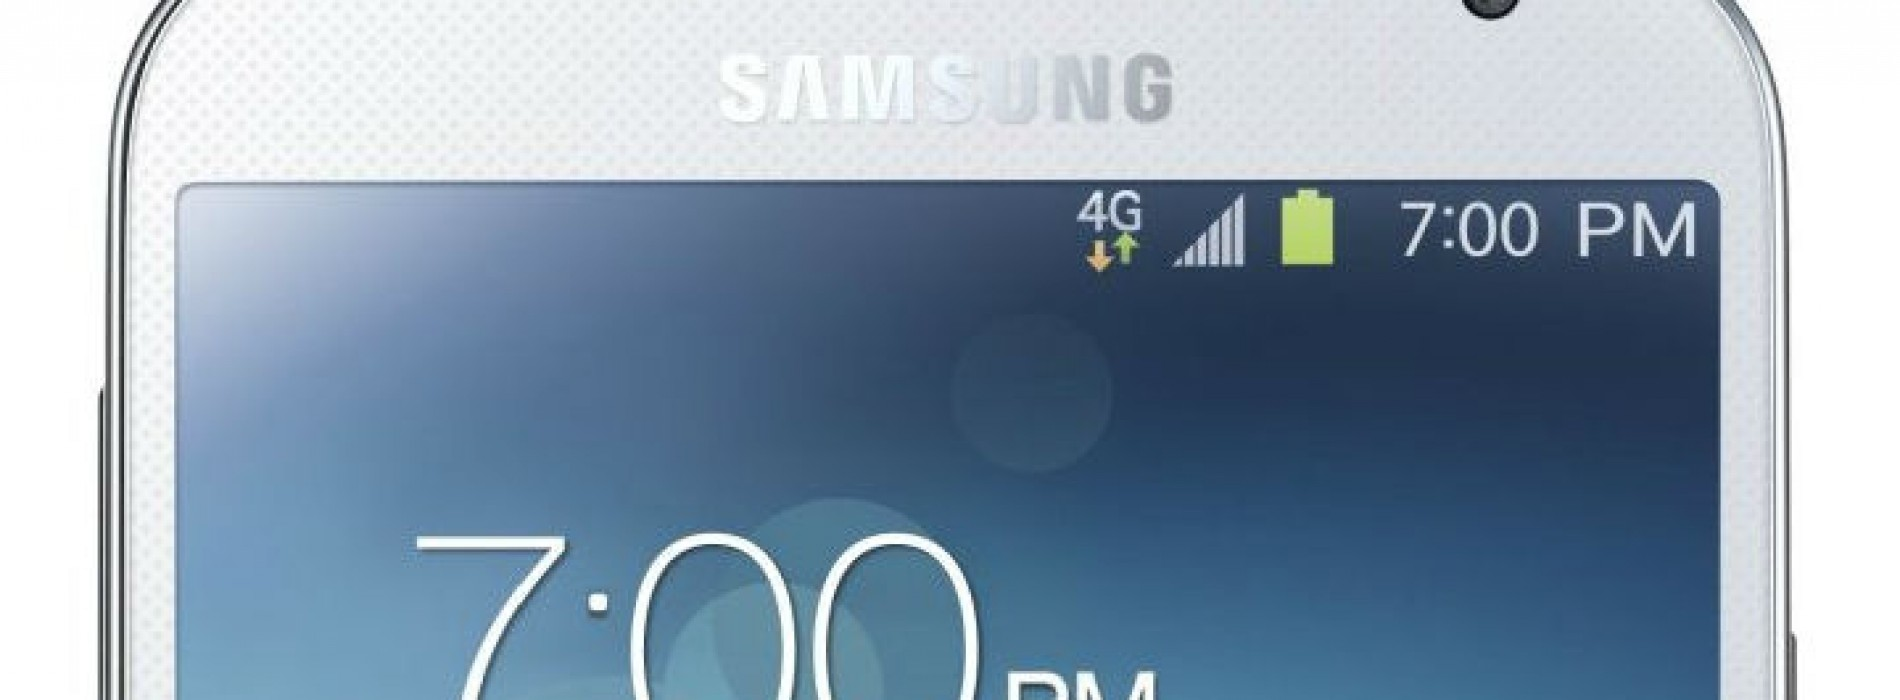 New week, new rumors for the Samsung Galaxy S5